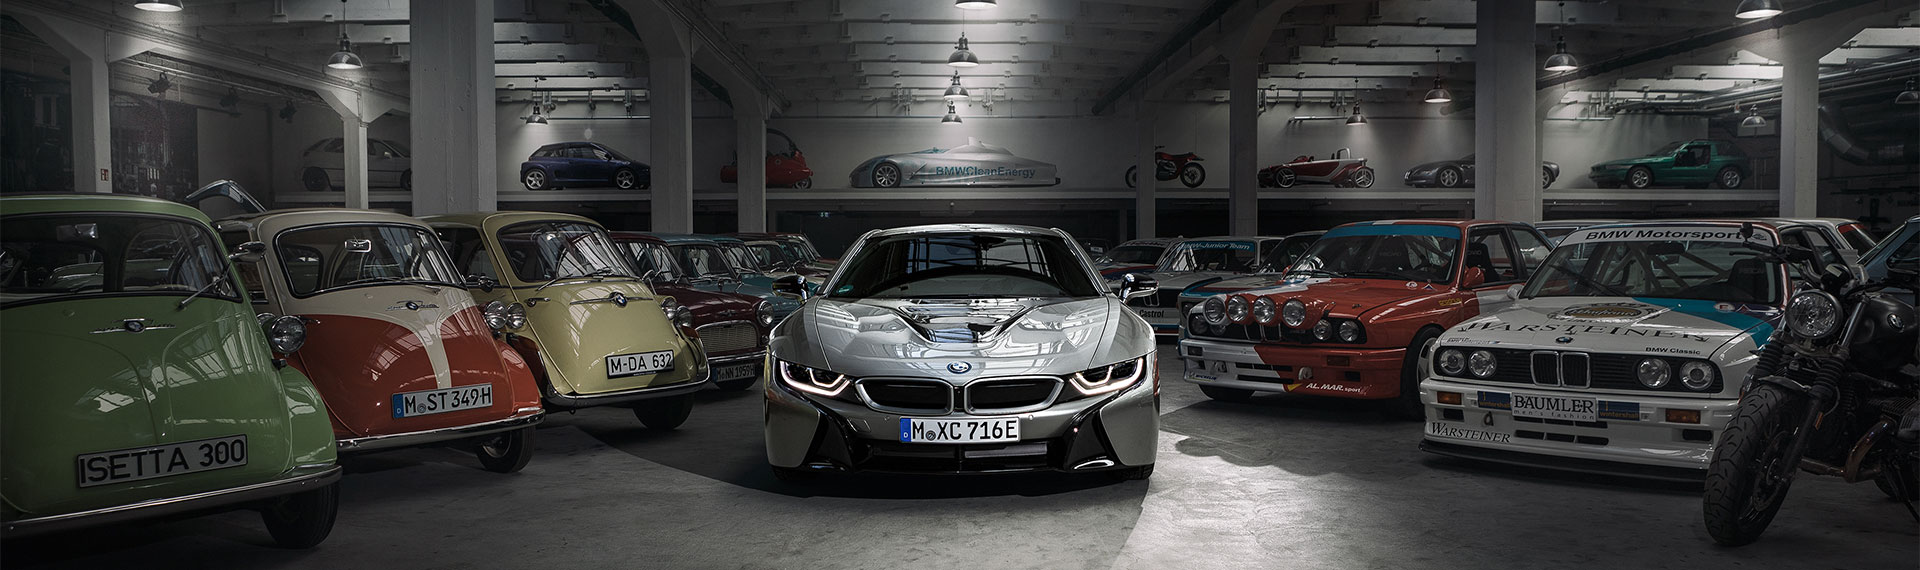 BMW i8 in garage with classic BMW range